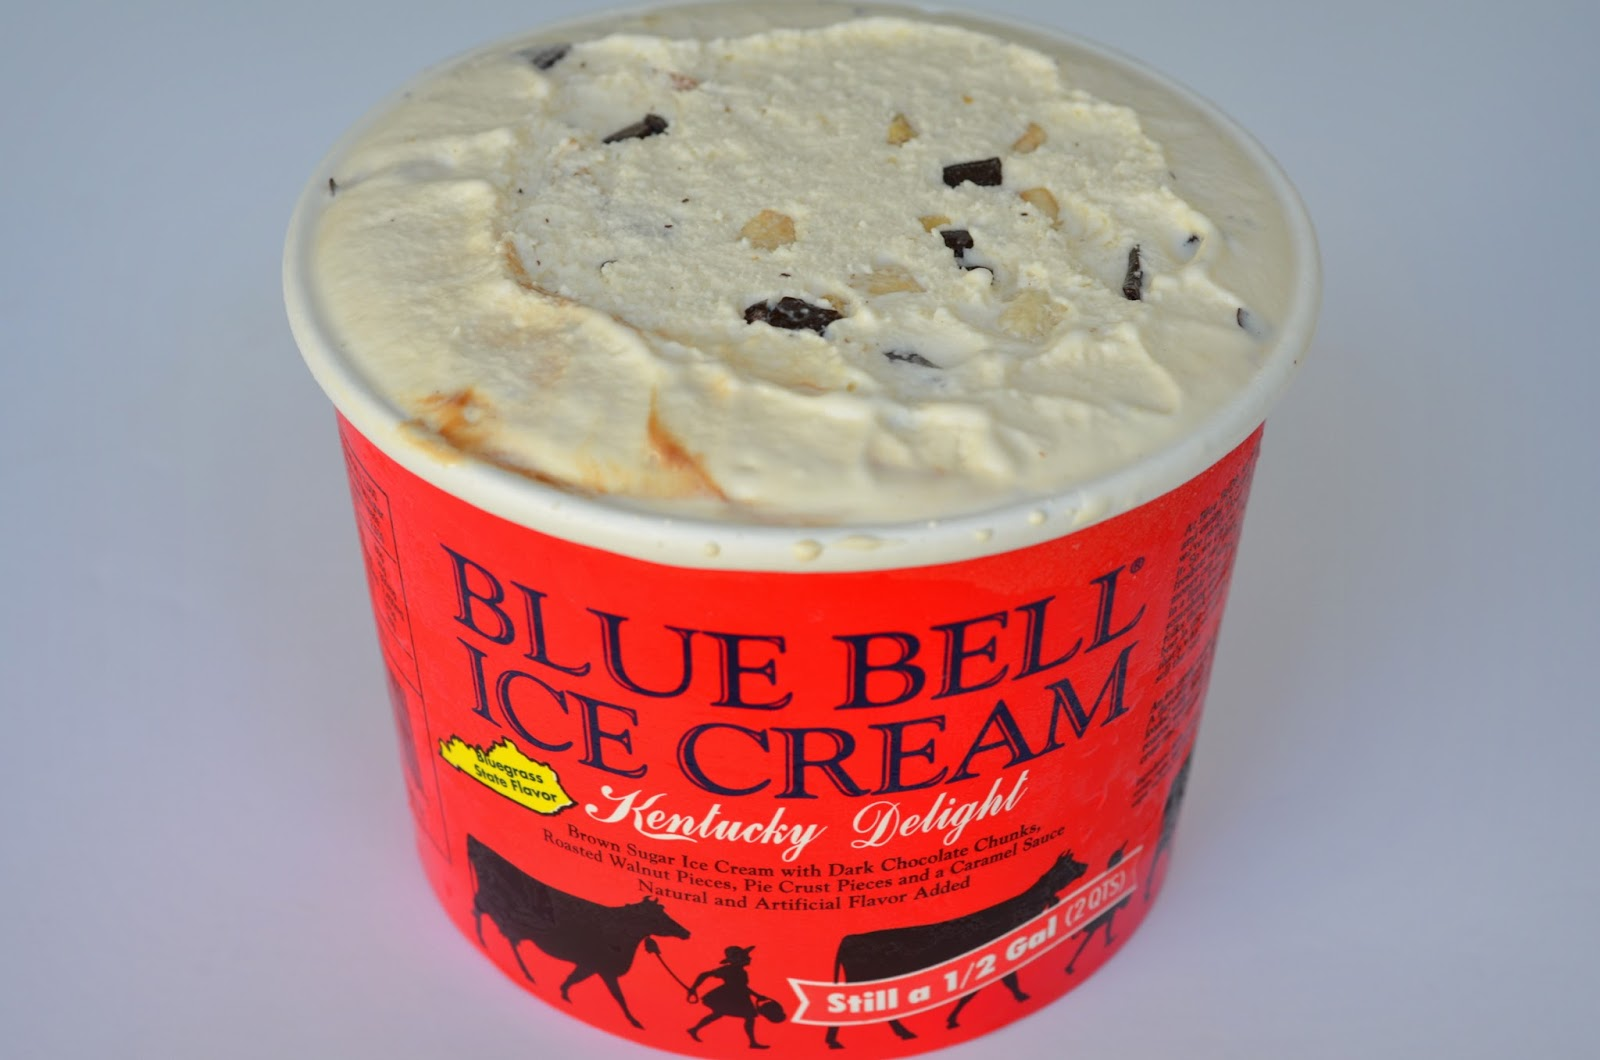 food and ice cream recipes REVIEW Blue Bell Kentucky Delight